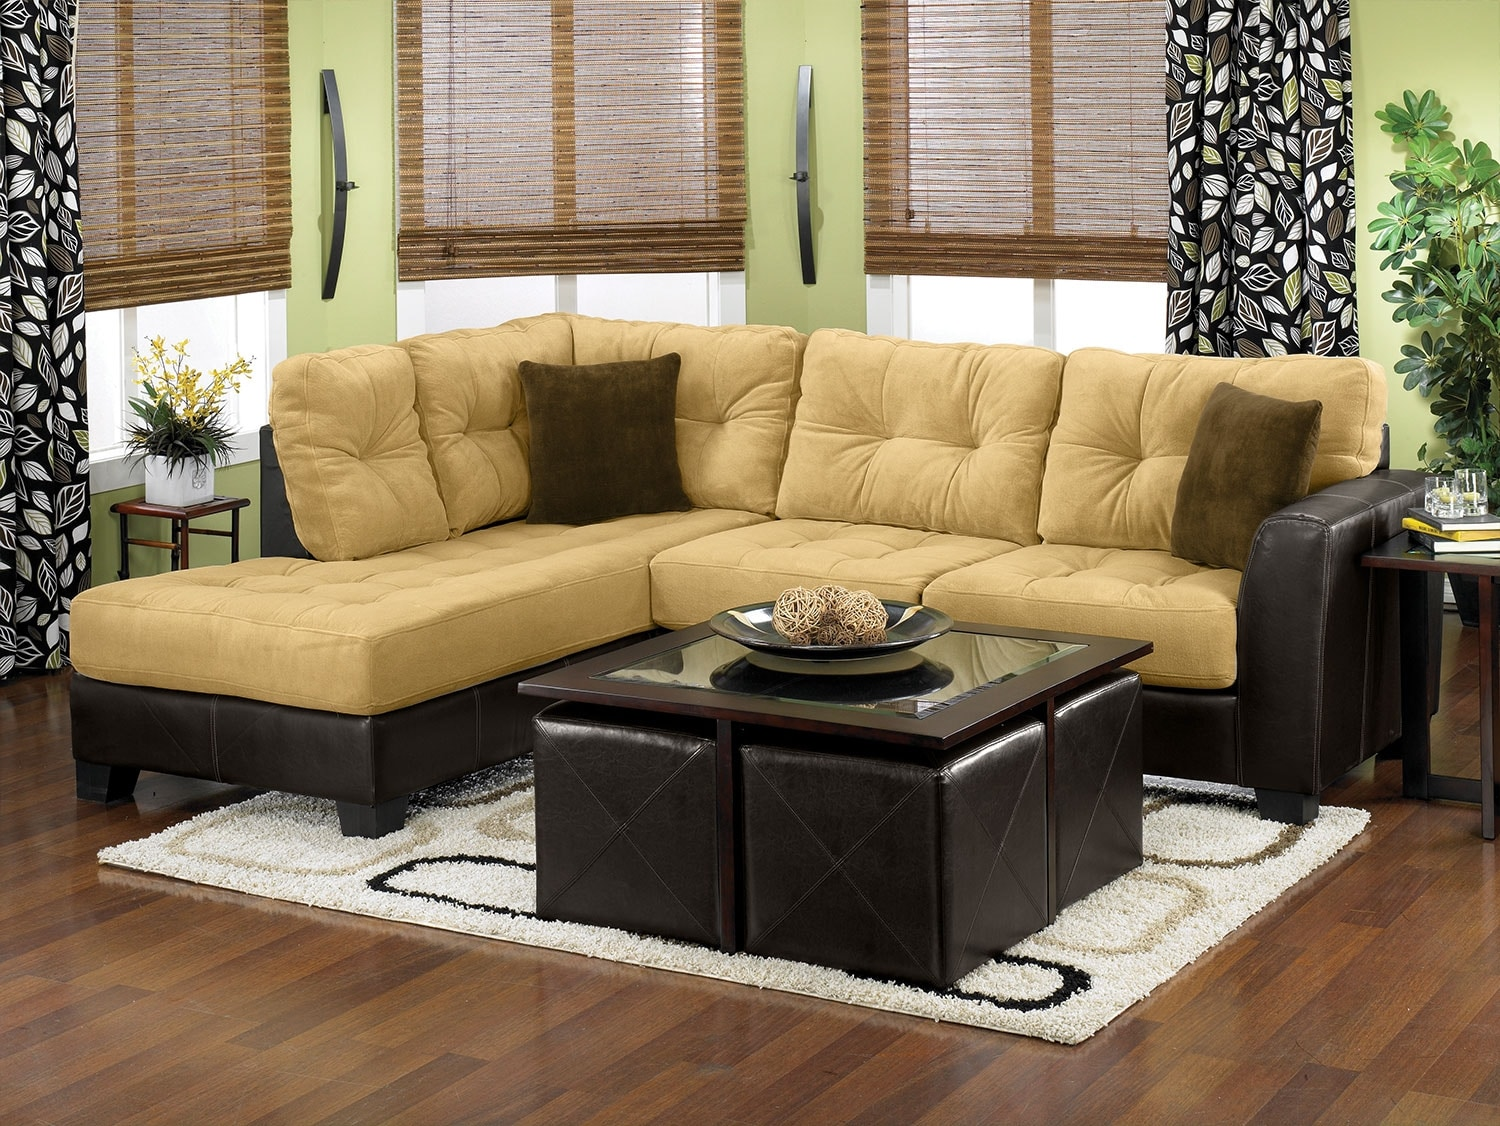 Bella 2 Piece Left Facing Microsuede Sectional Two Tone Brown The Brick